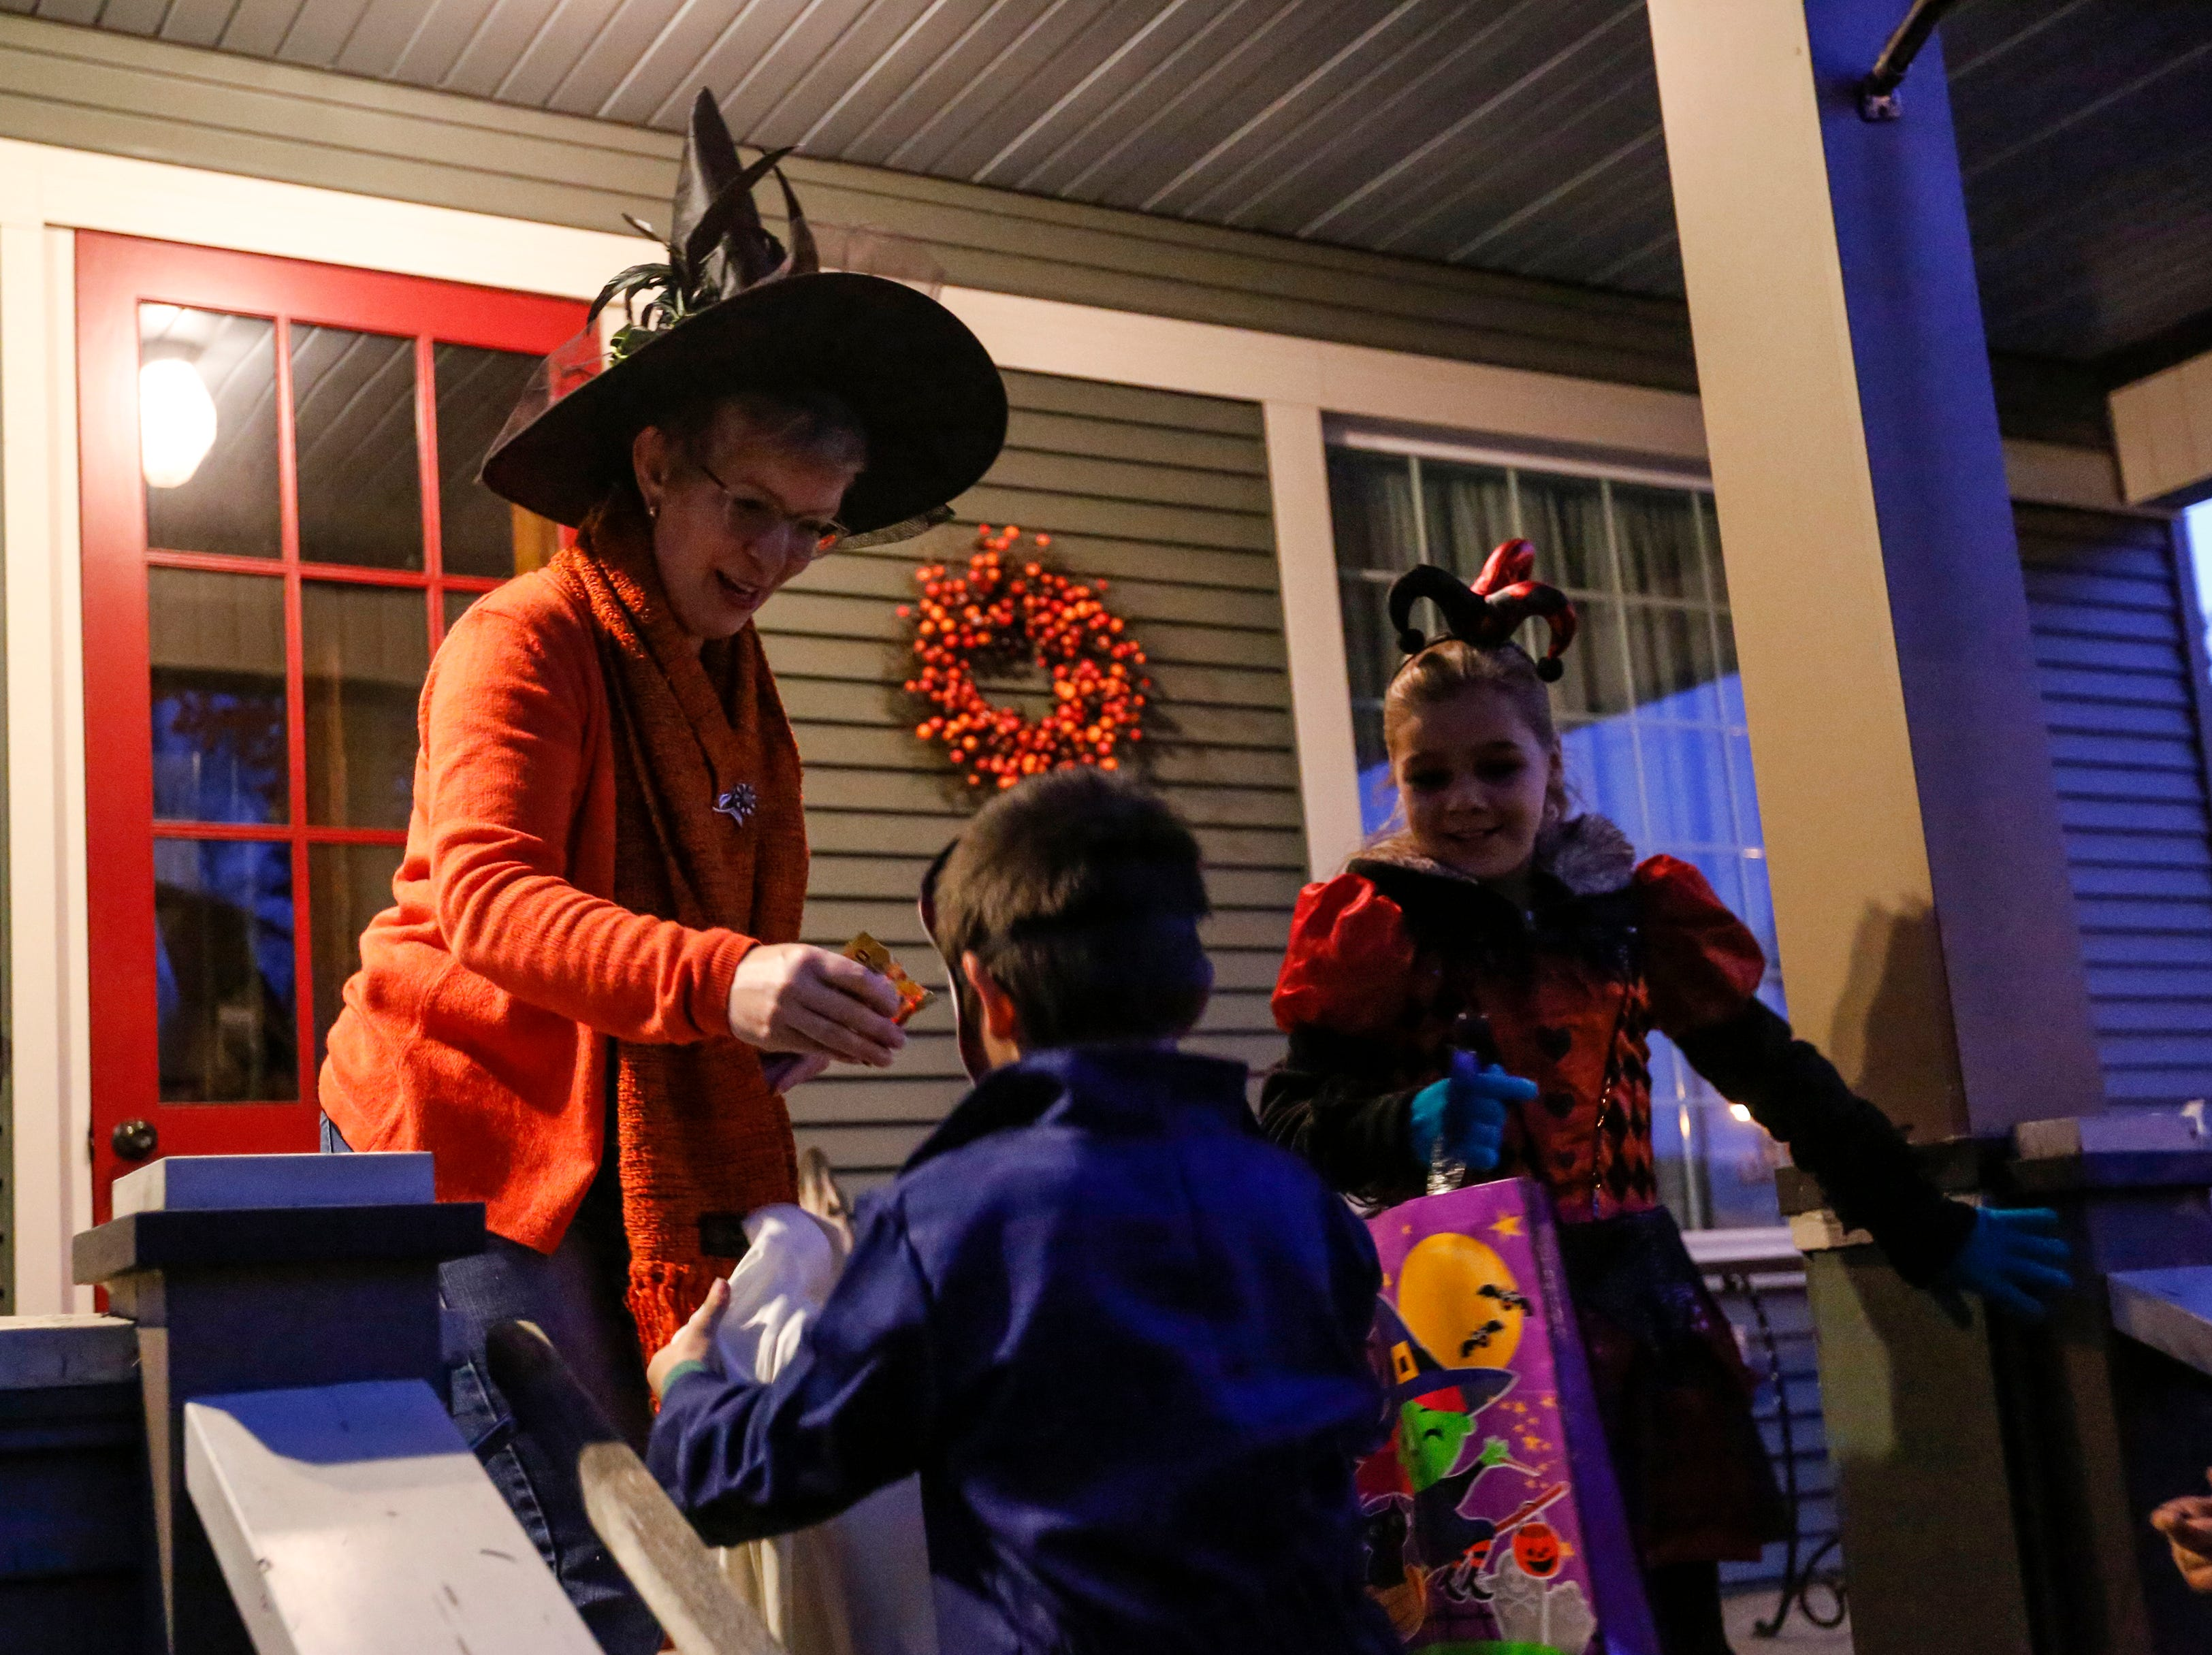 Kristina Schram hands out candy to trick-or-treaters on Halloween Wednesday, October 31, 2018, in Manitowoc, Wis. Joshua Clark/USA TODAY NETWORK-Wisconsin